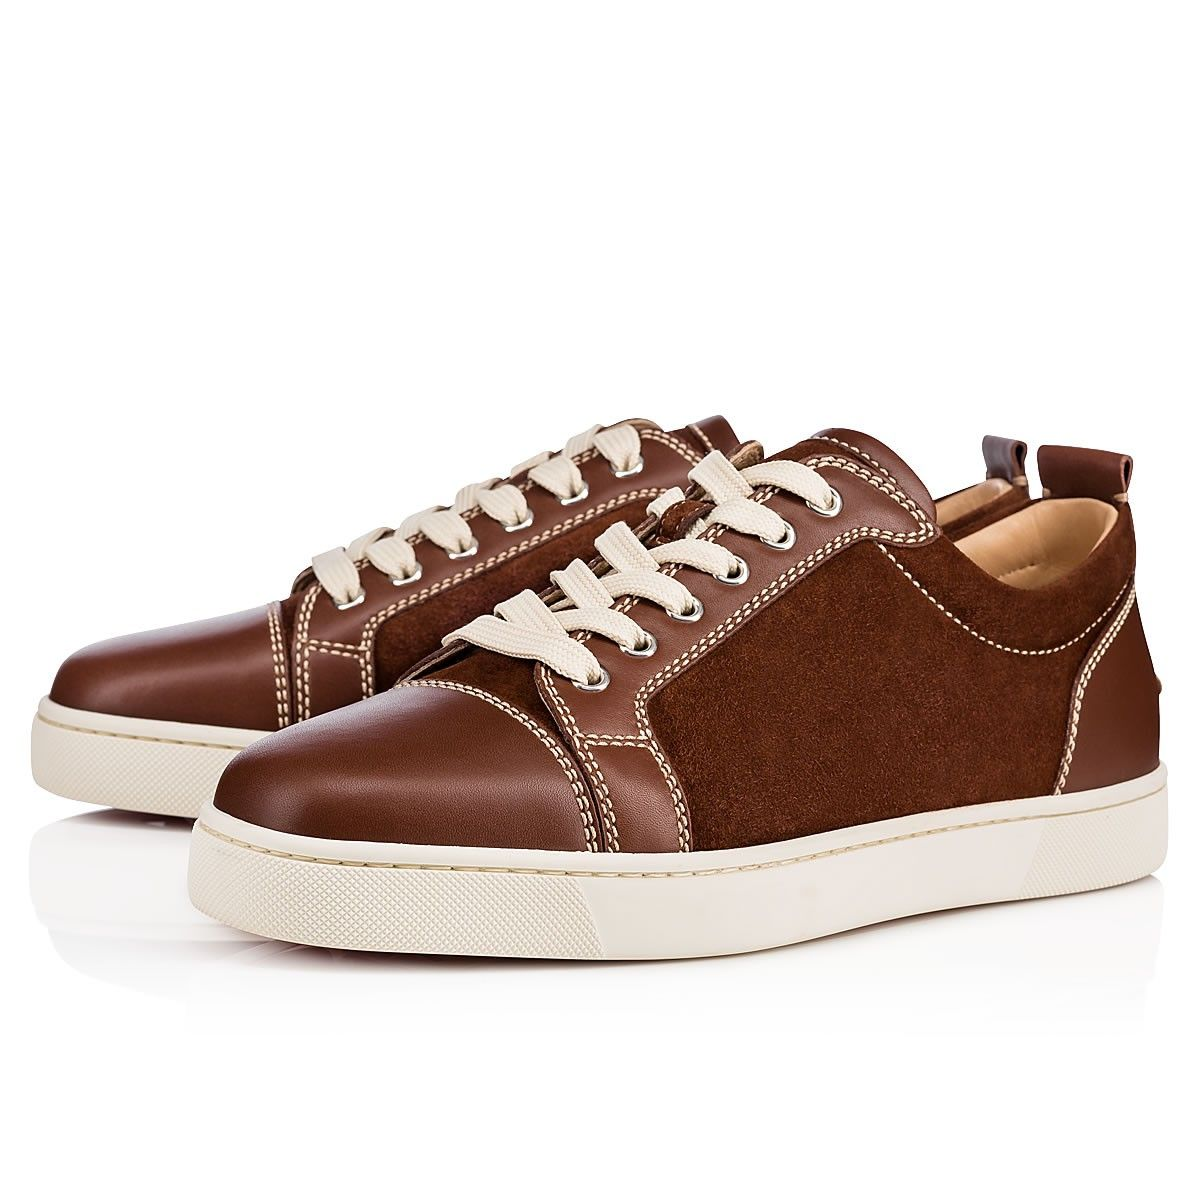 42807328b624 Christian Louboutin United States Official Online Boutique - Louis Junior  Men s Flat Pur Sang Leather available online. Discover more Men Shoes by  Christian ...